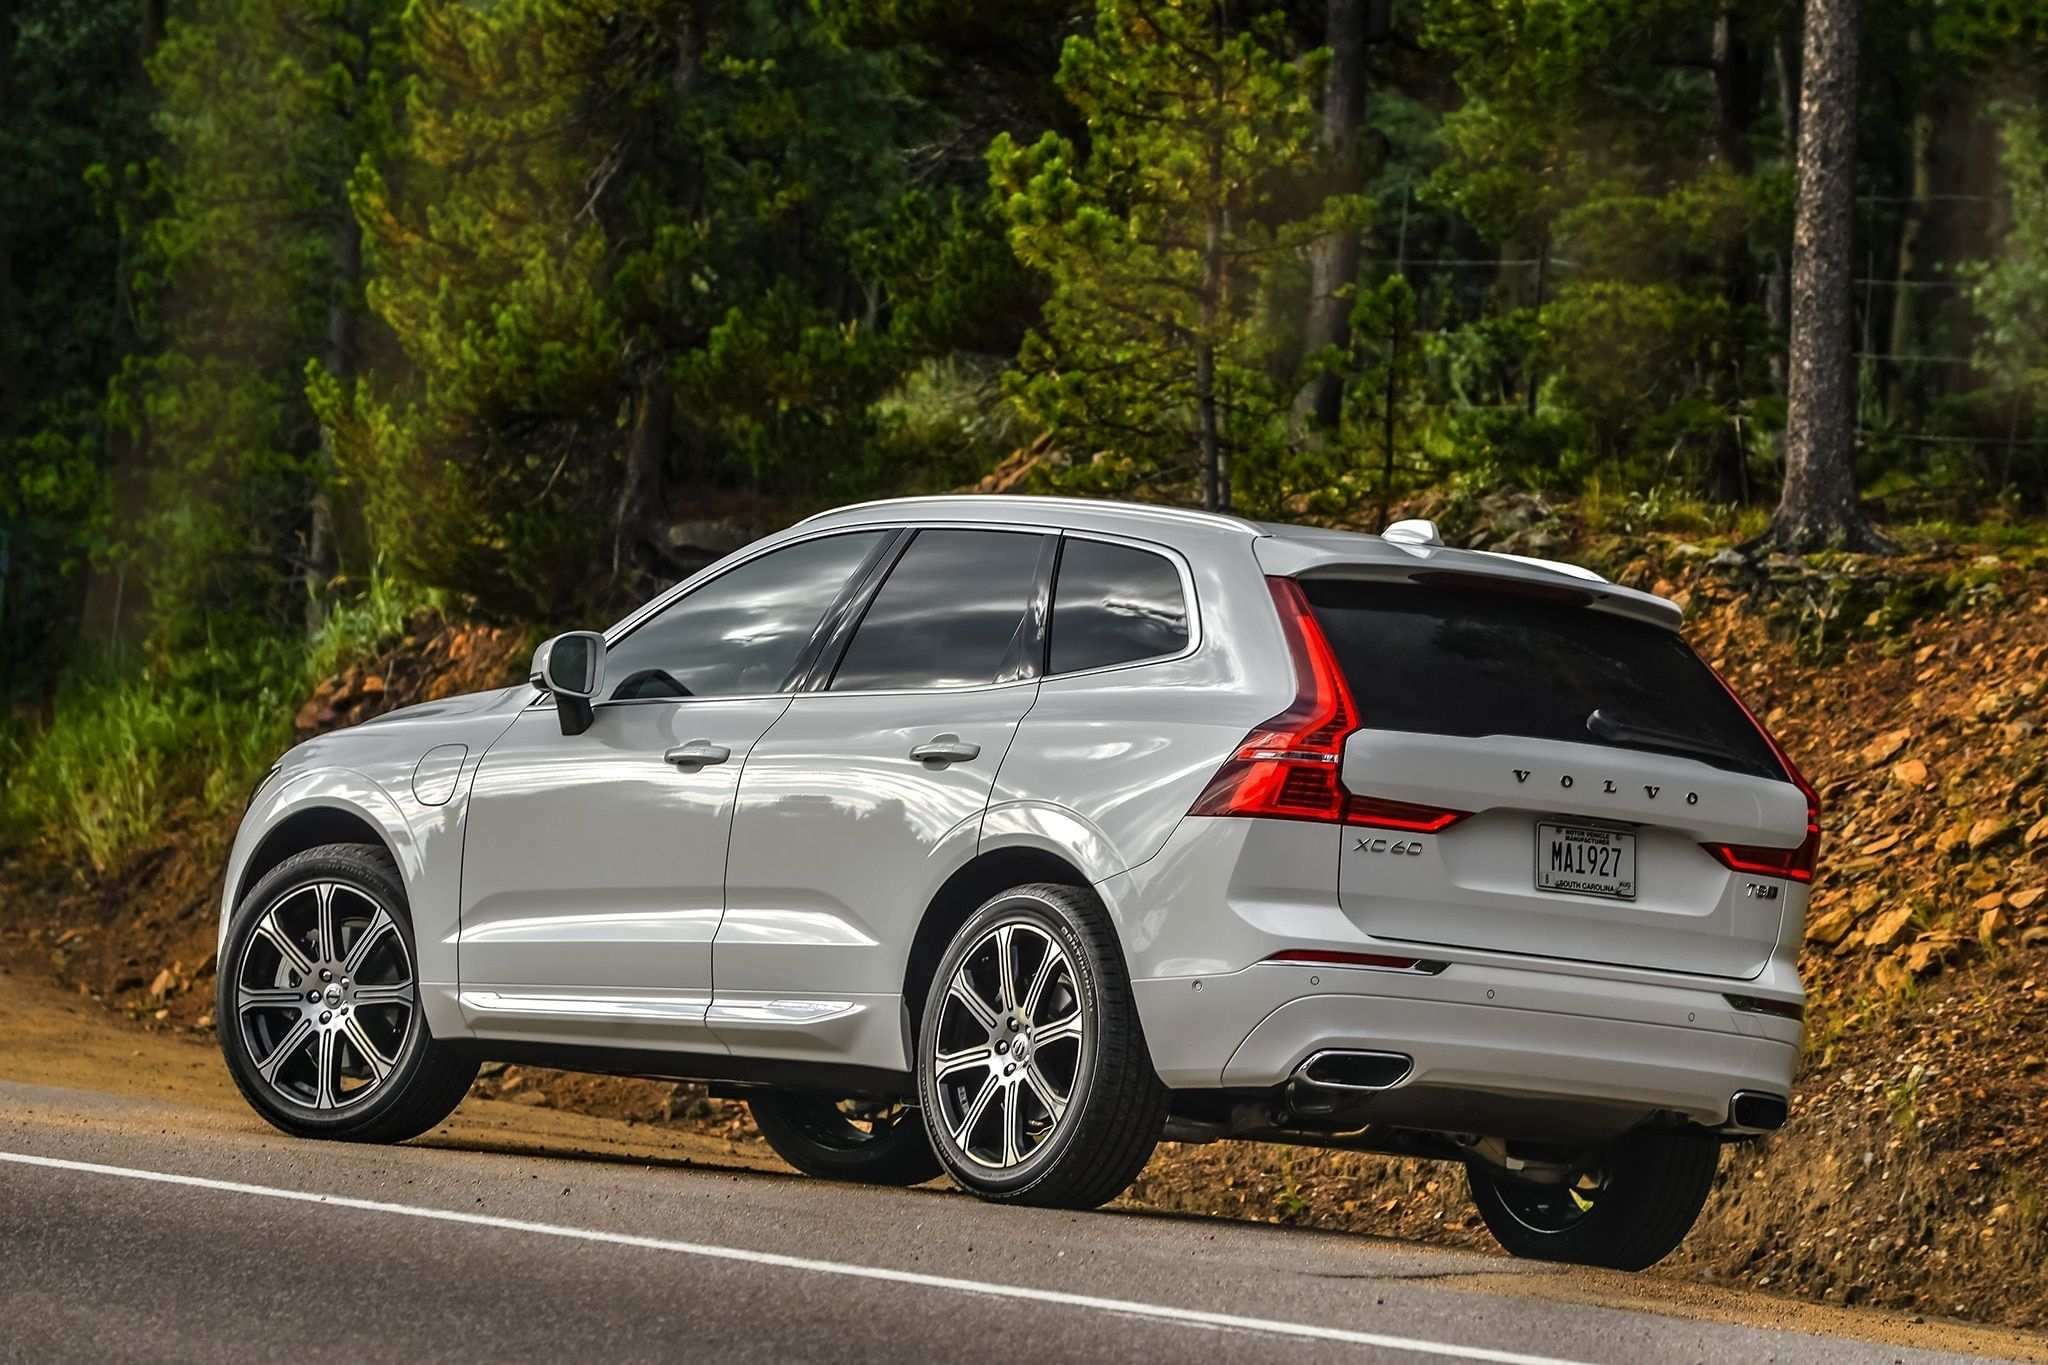 39 All New Volvo Xc60 2019 Manual New Concept